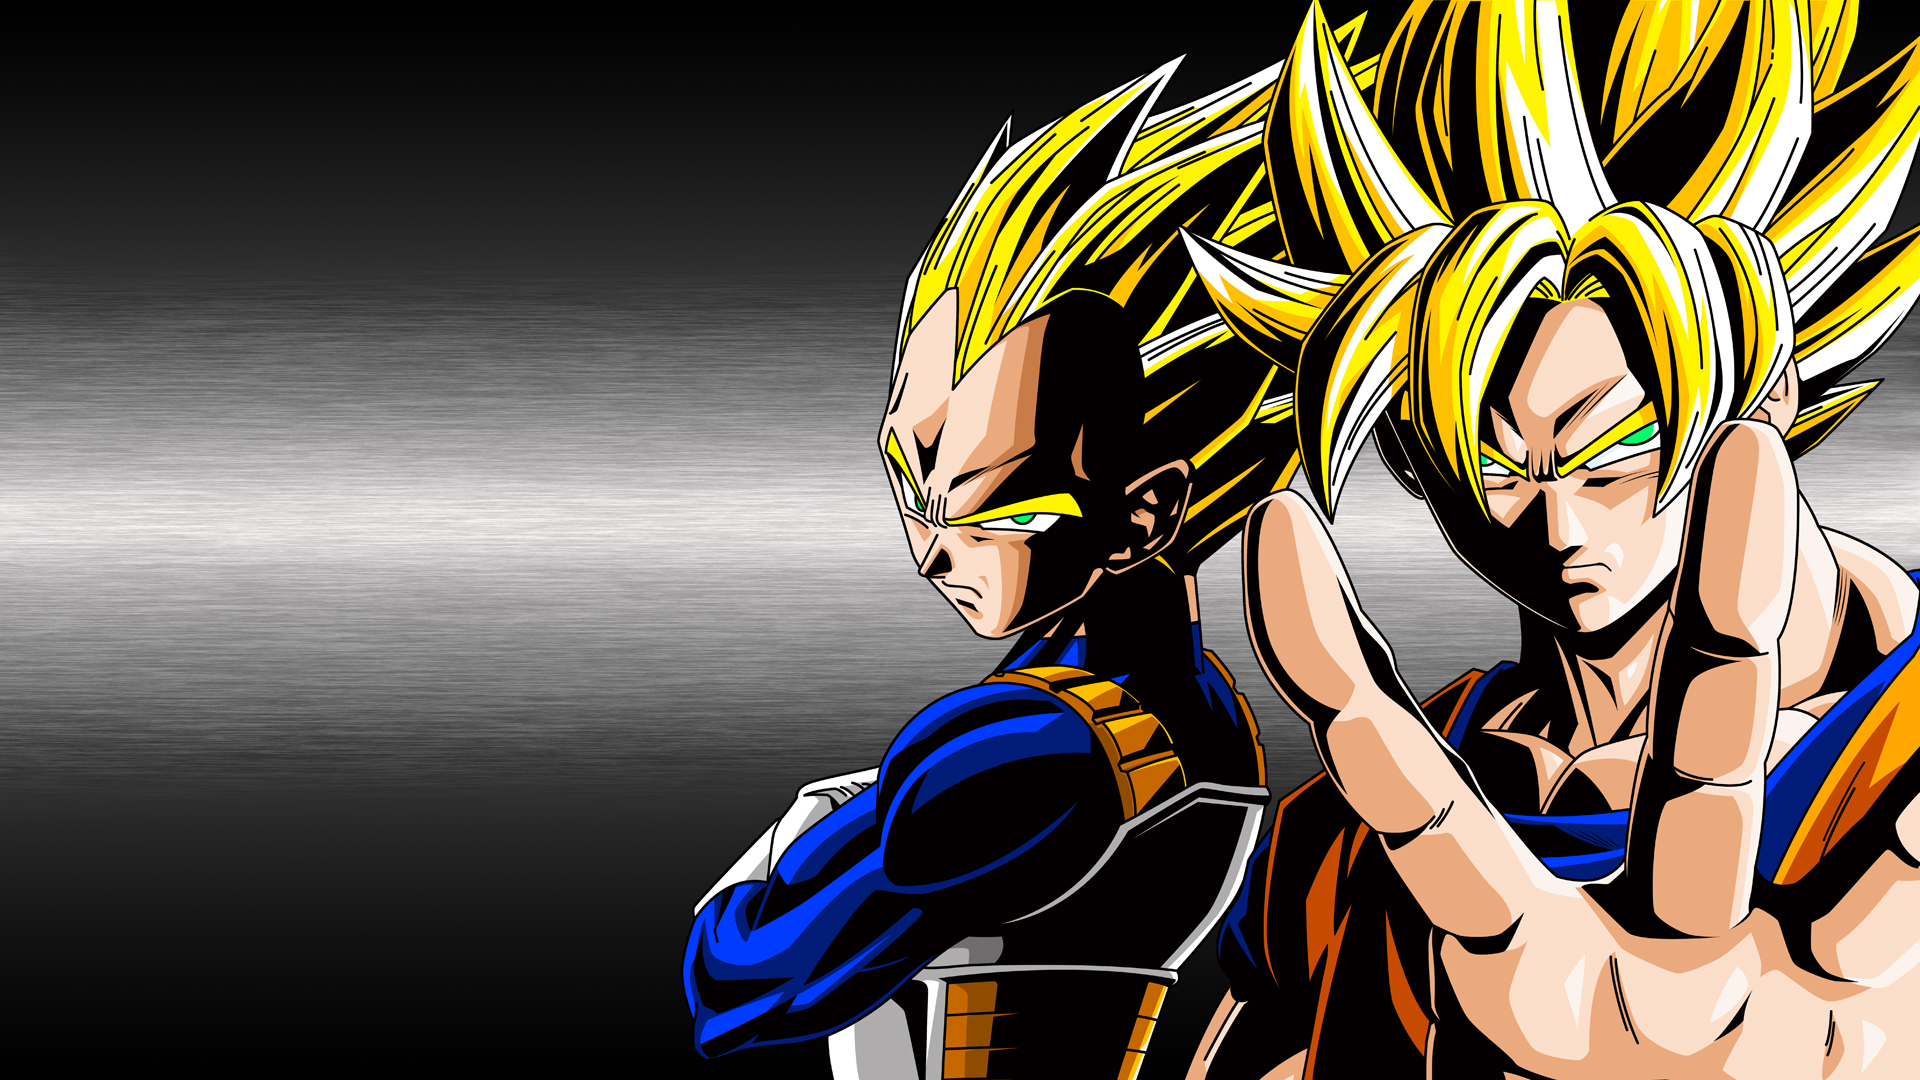 The best quality and size only with us! Dragon Ball Z anime wallpaper | 1920x1080 | 41047 ...